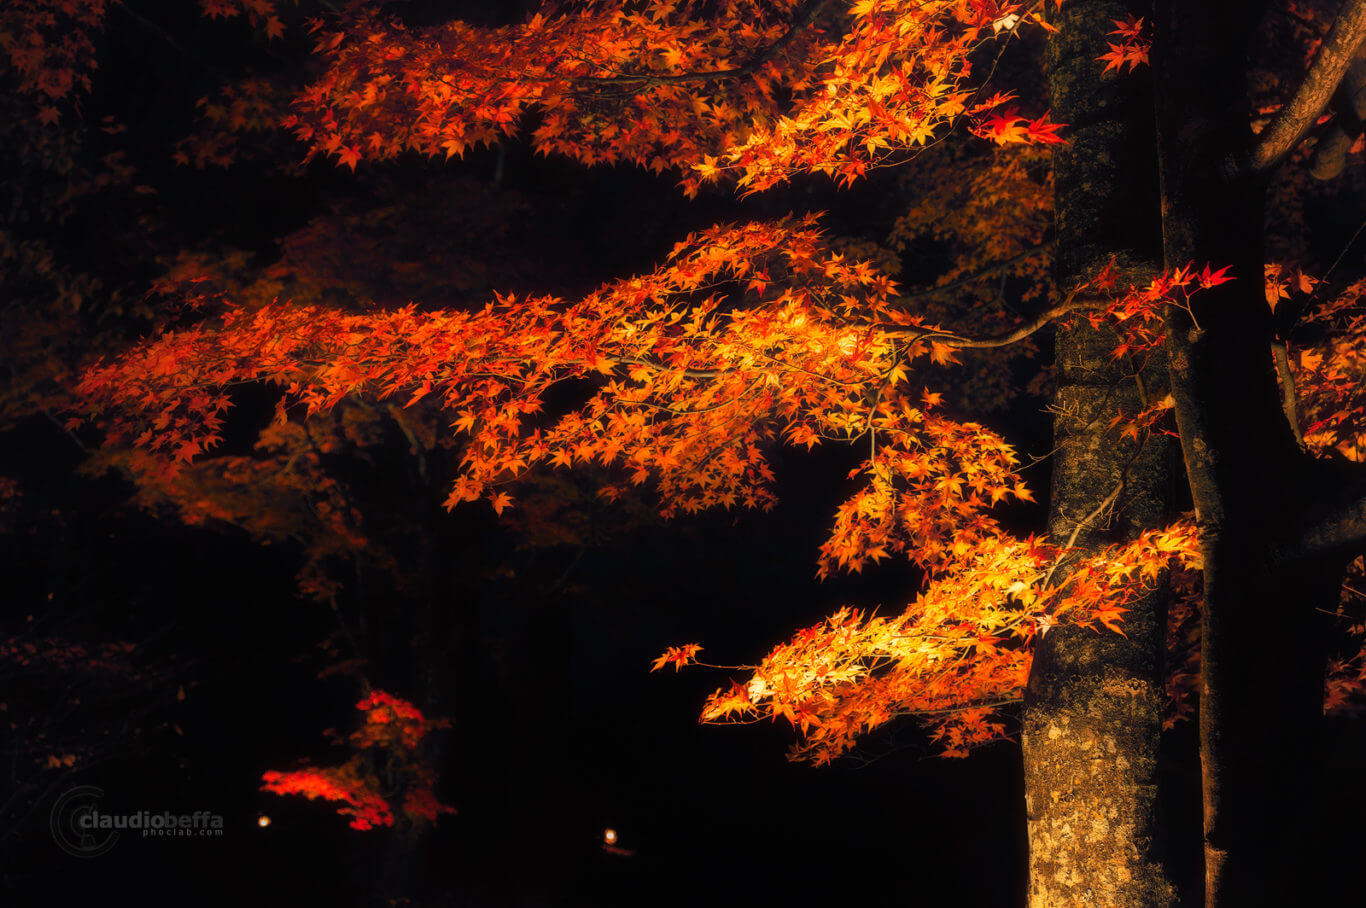 Mount Fuji, Fuji, autumn, fall, Momiji grove, red, leaves, trees, grove, light, darkness, travel, photography, phoclab